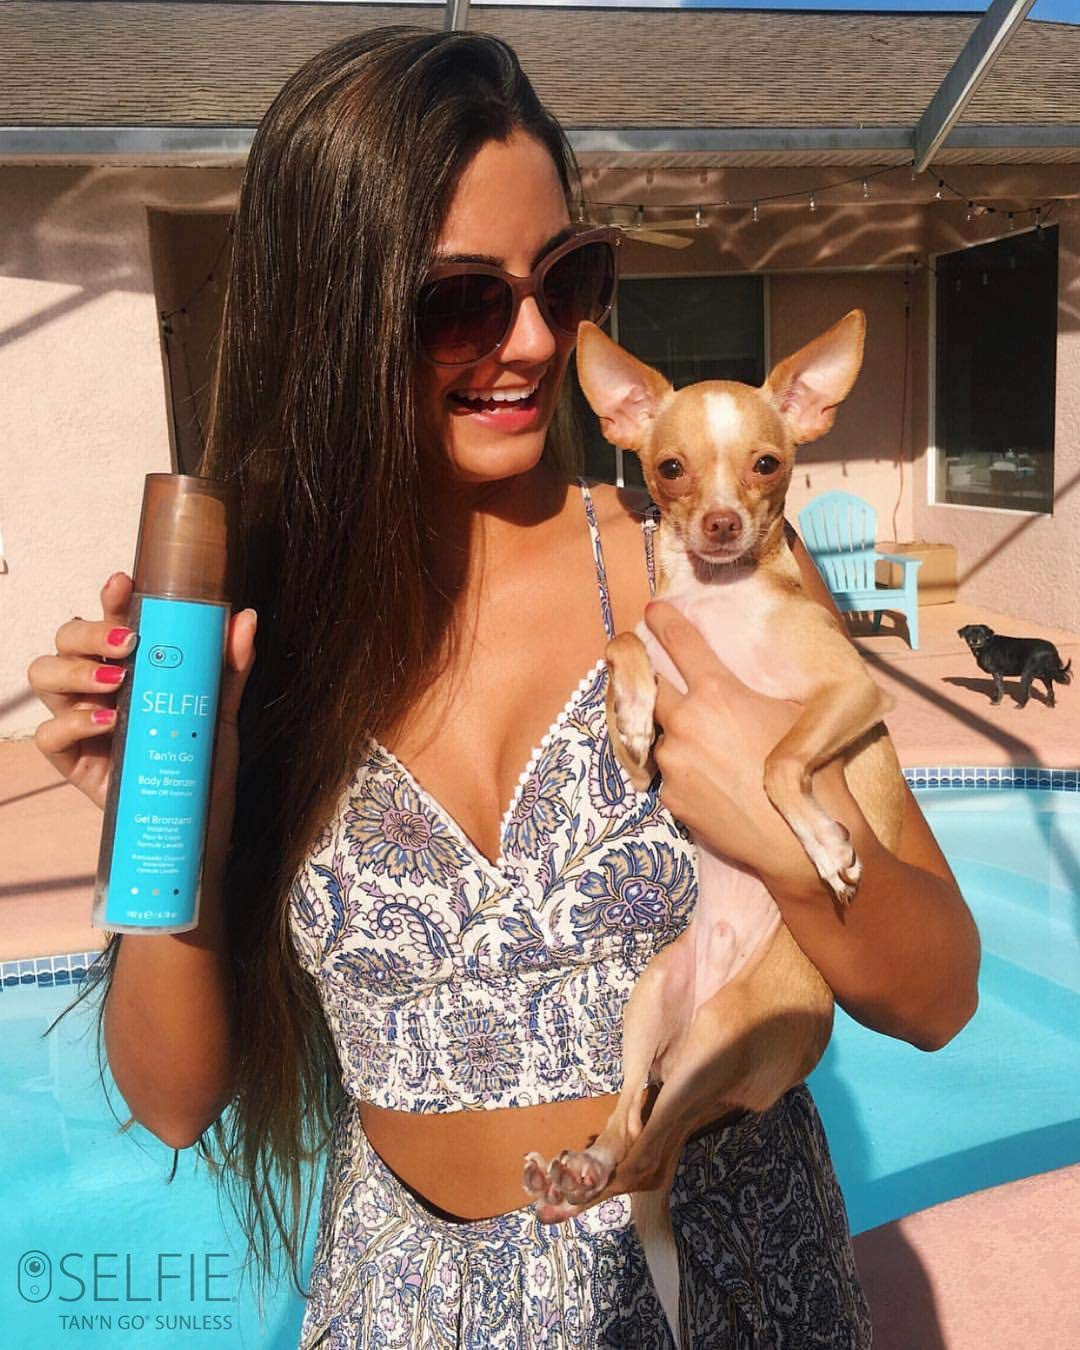 Selfie Tan'n Go Instant Body Bronzer with Wash Off Formula - Sunless self tanner (Medium Tan) rich,  Exotic natural looking fragrance-free tan for head to toe for  all skin types, 6.7 oz by Selfie (Image #7)